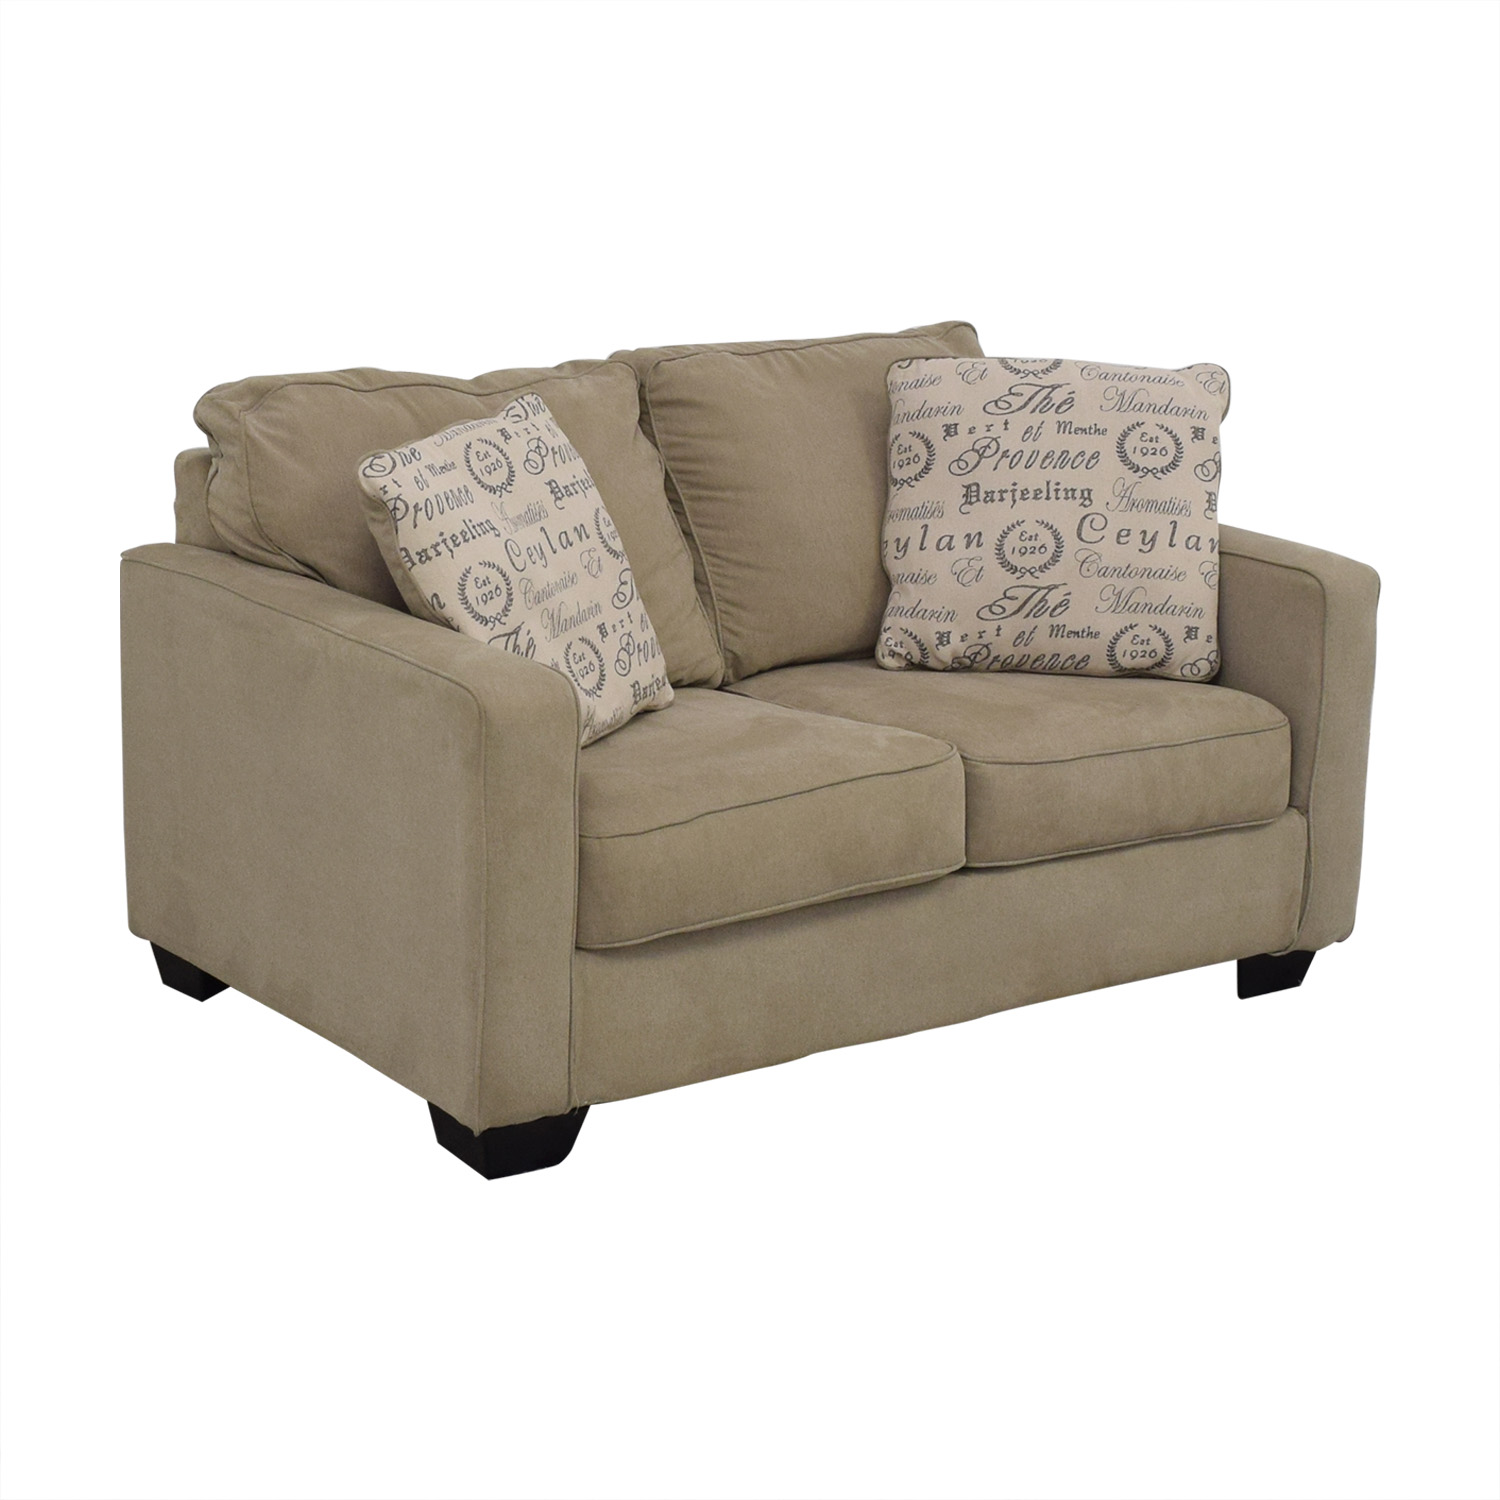 Jennifer Furniture Jennifer Furniture Alenya Loveseat Sofas